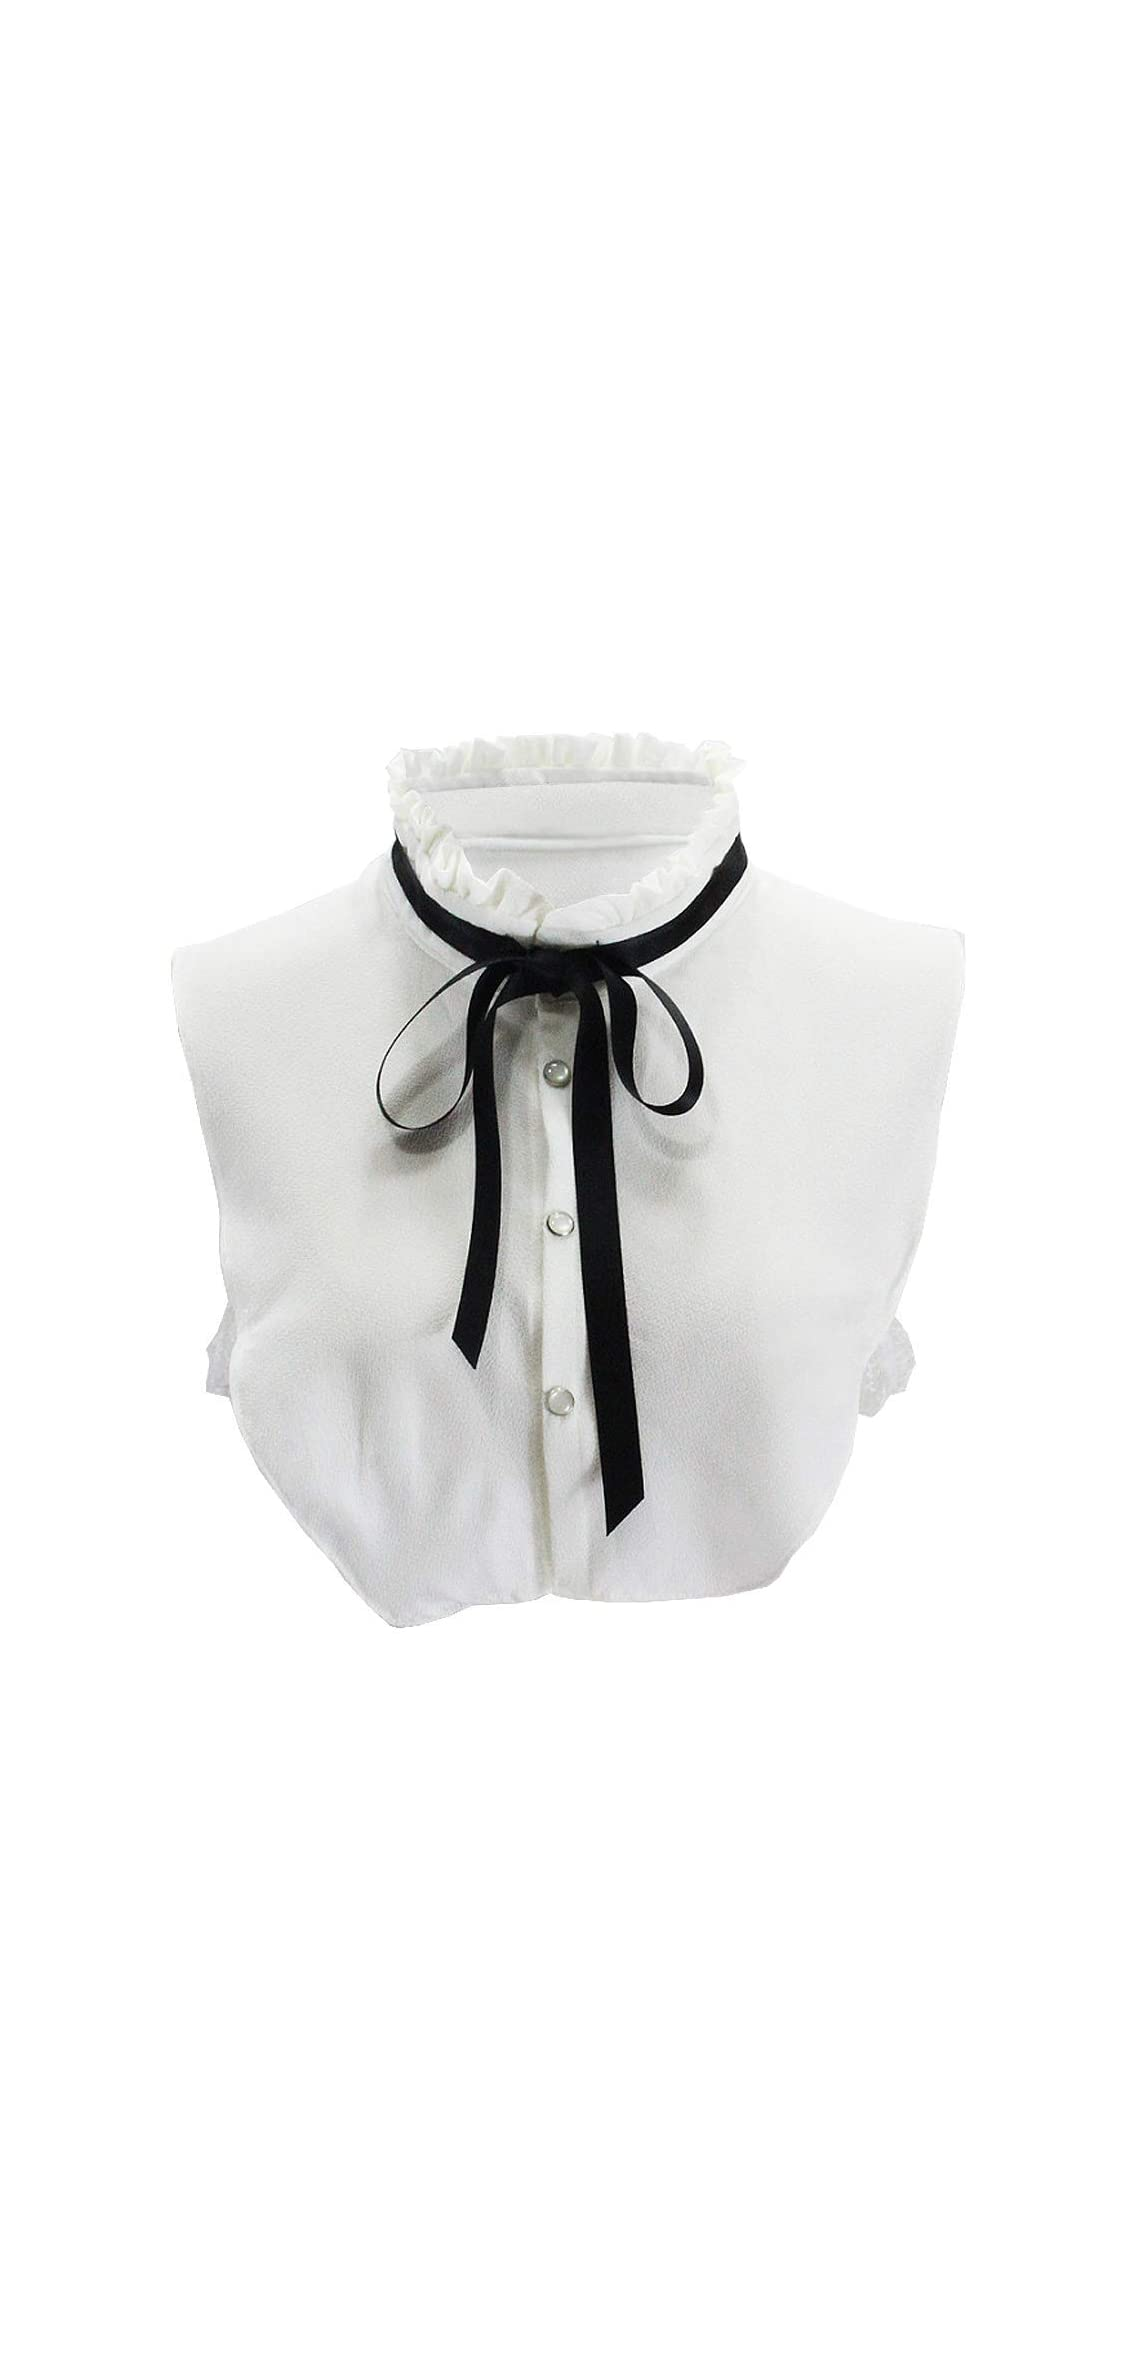 Student's Sweet Pleated Ruffled Lace Half Shirt False Tie